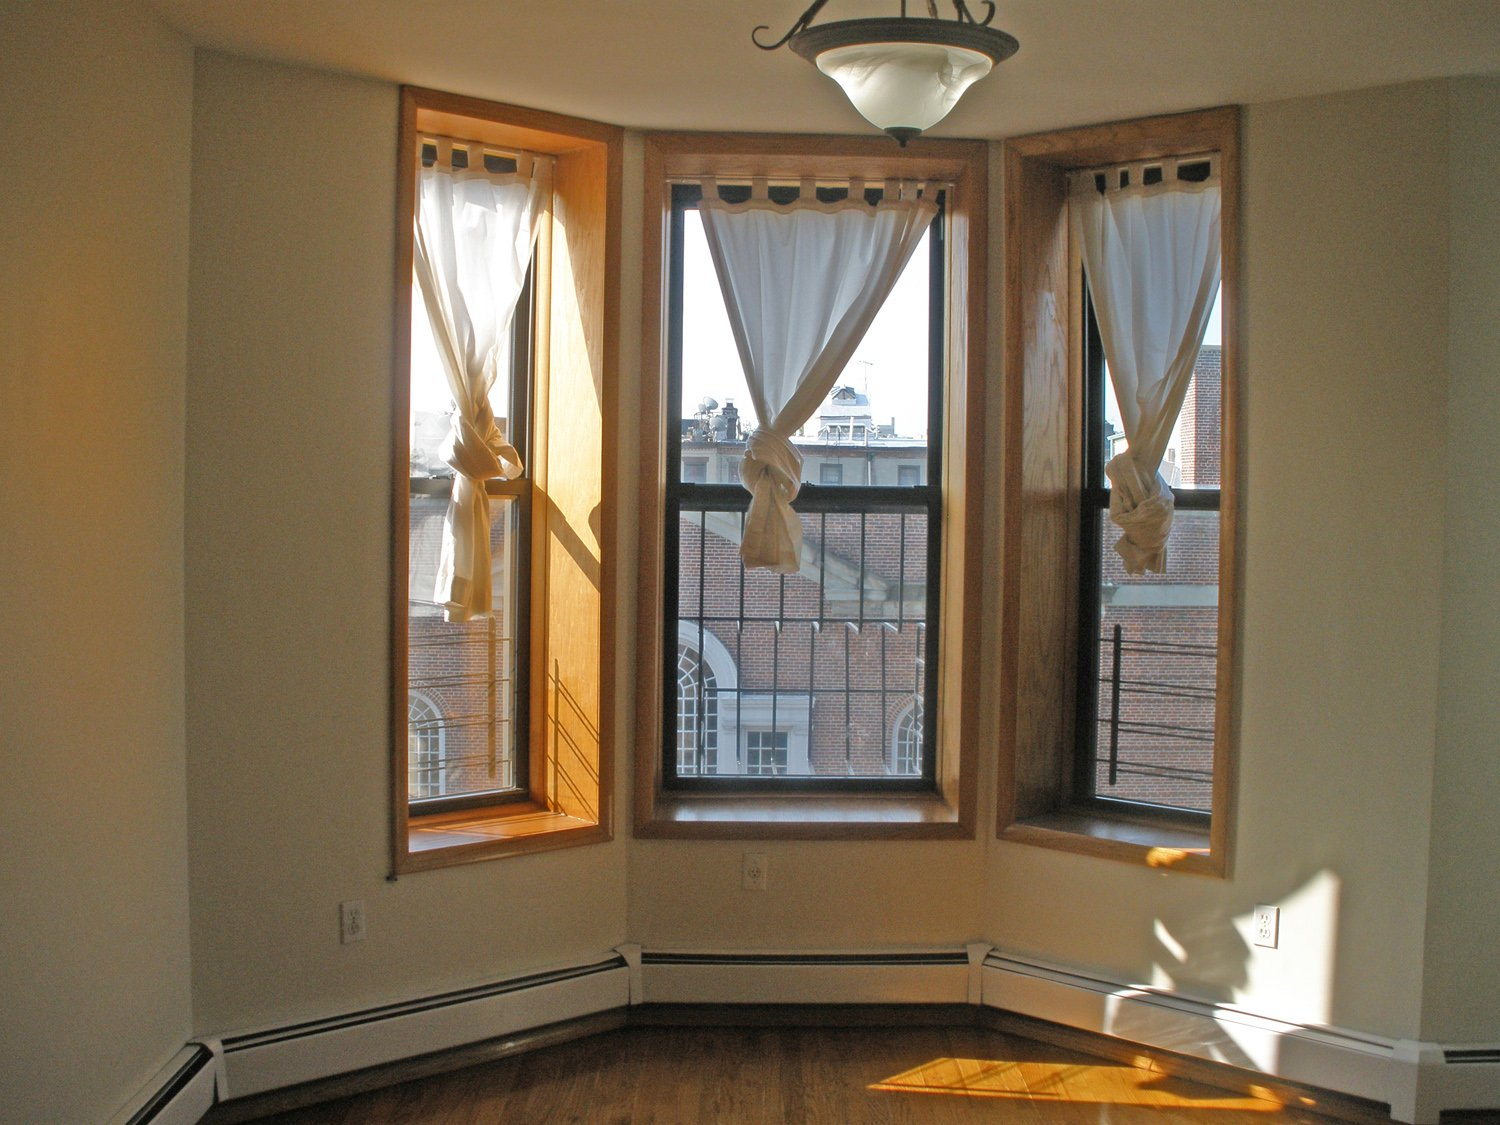 Bed stuy 1 bedroom apartment for rent brooklyn crg3118 for Two bedroom apt in bed stuy area